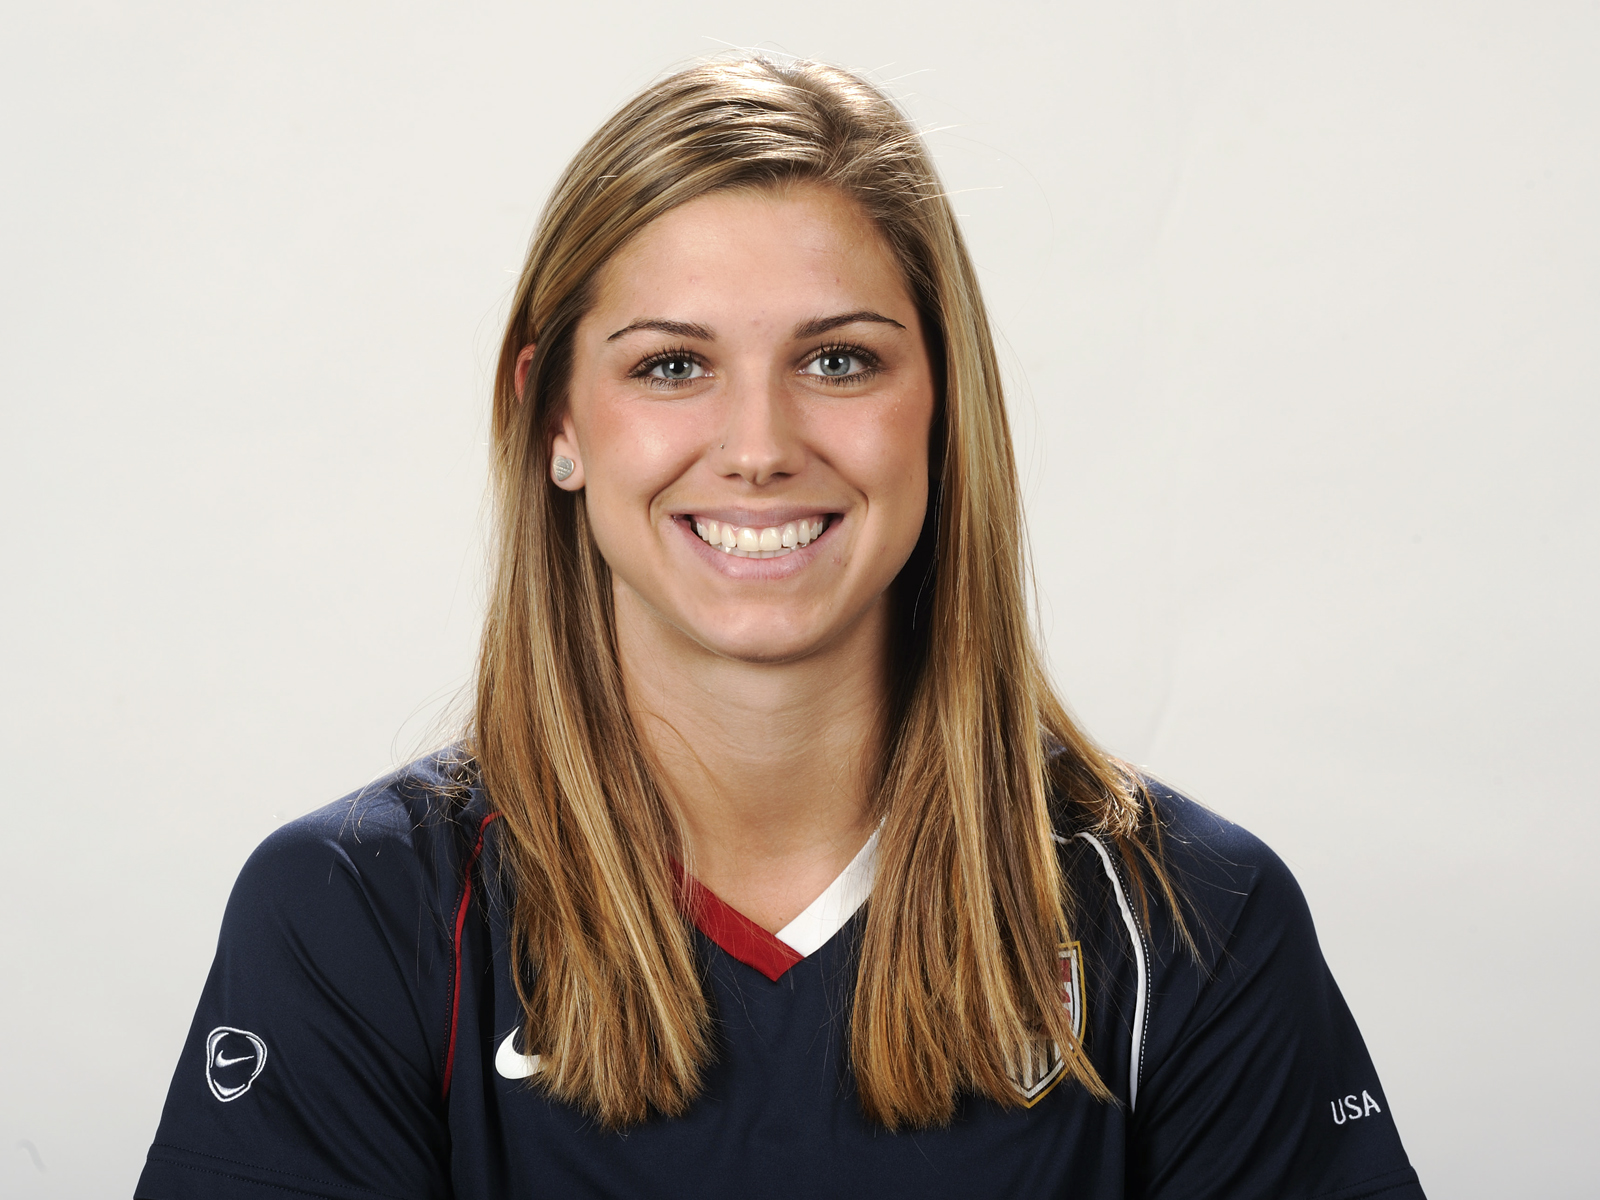 Alex Morgan Biography - Facts, Childhood, Family